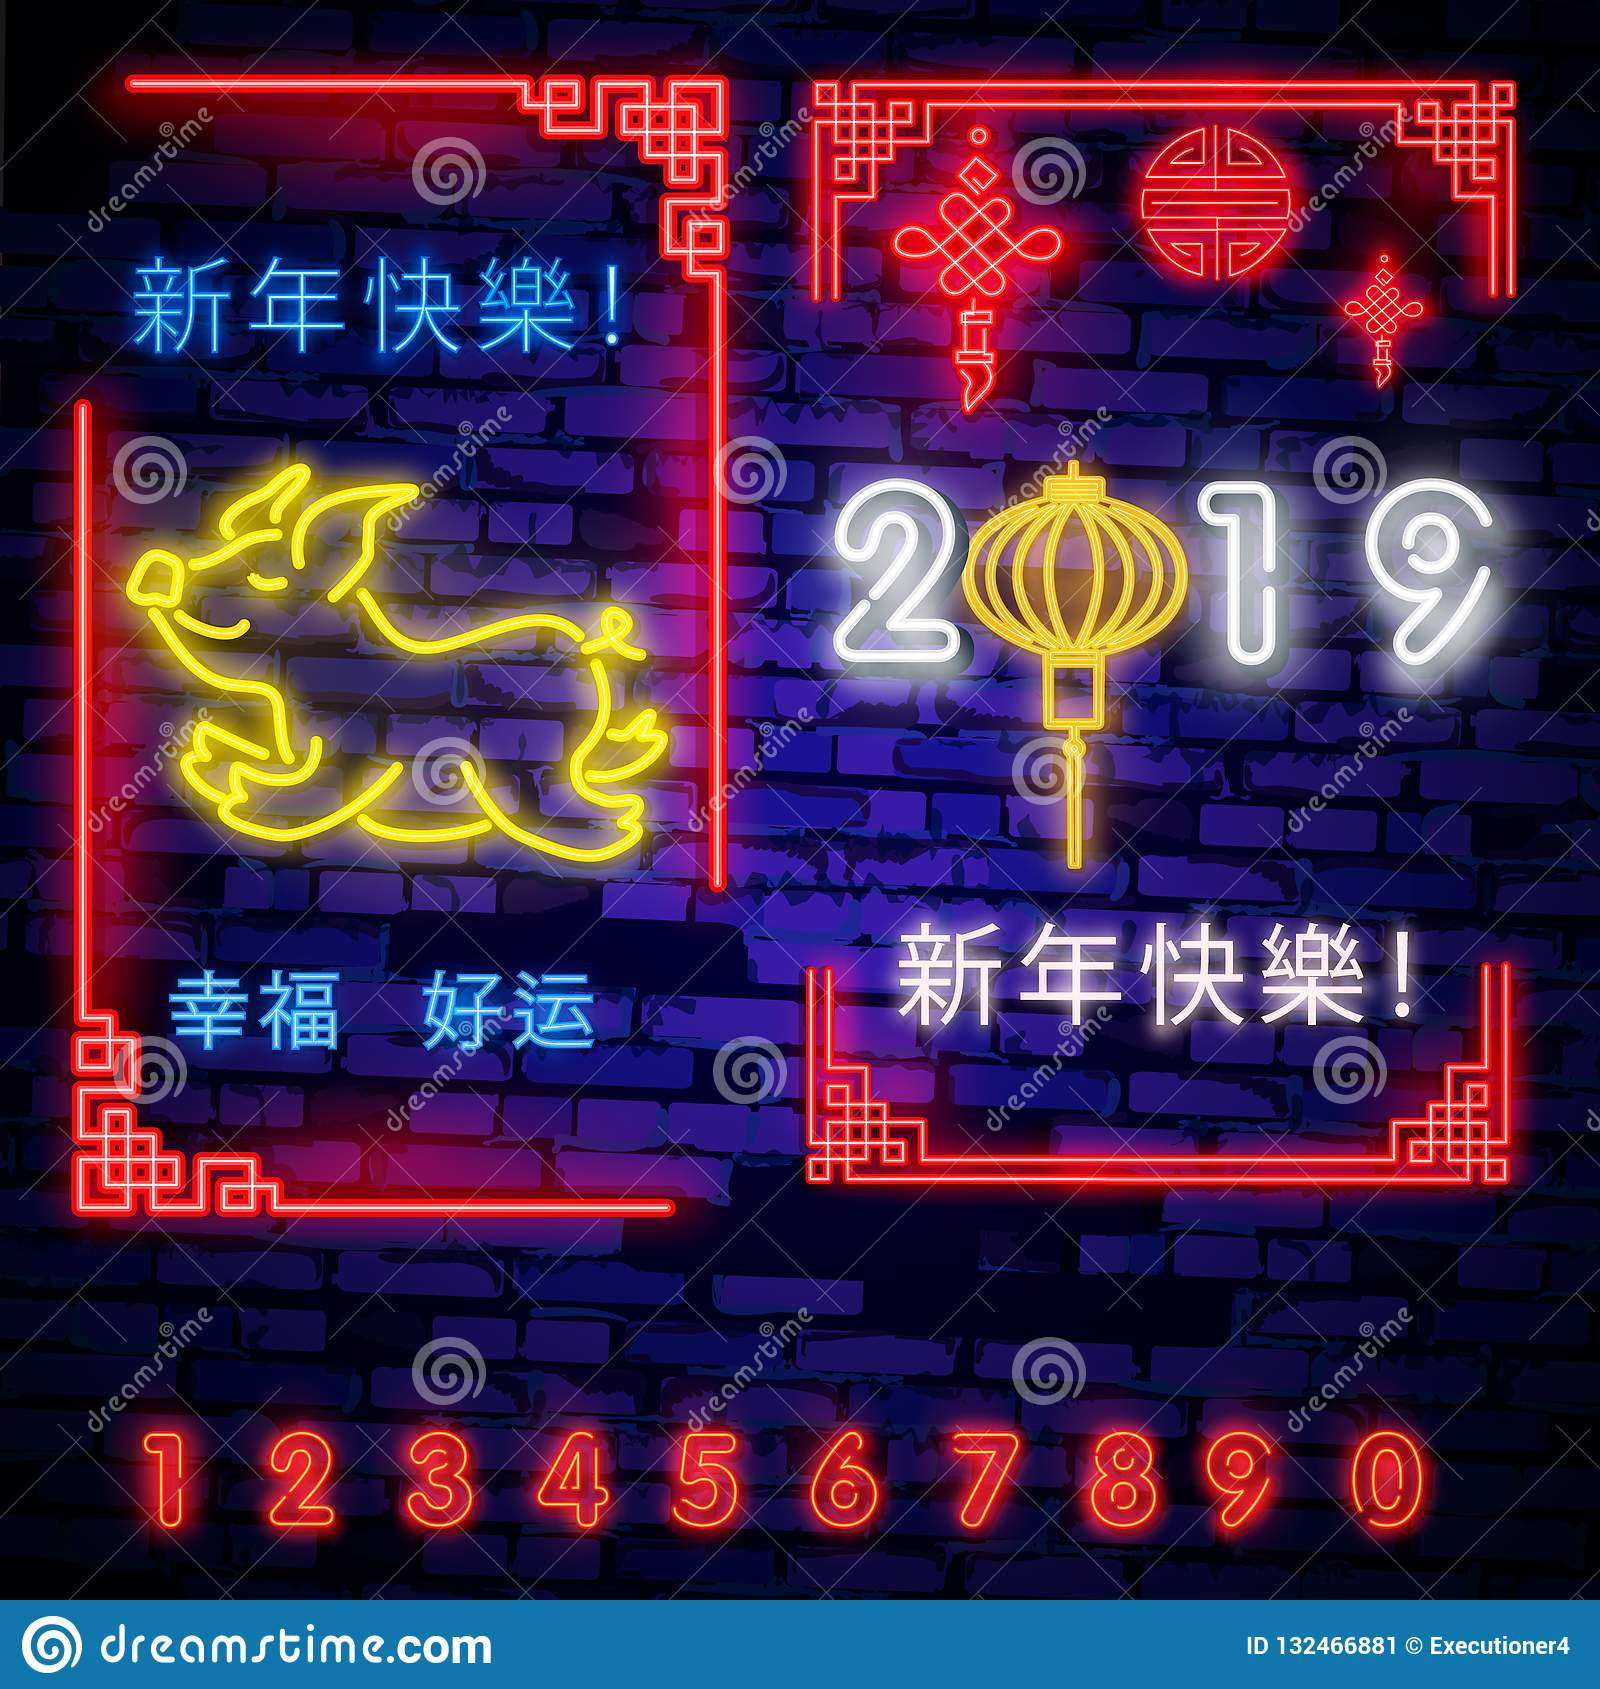 Happy Chinese New Year 2019 With Chinese characters-text: Happy new year in neon style. Chinese New Year Design Template, Zodiac